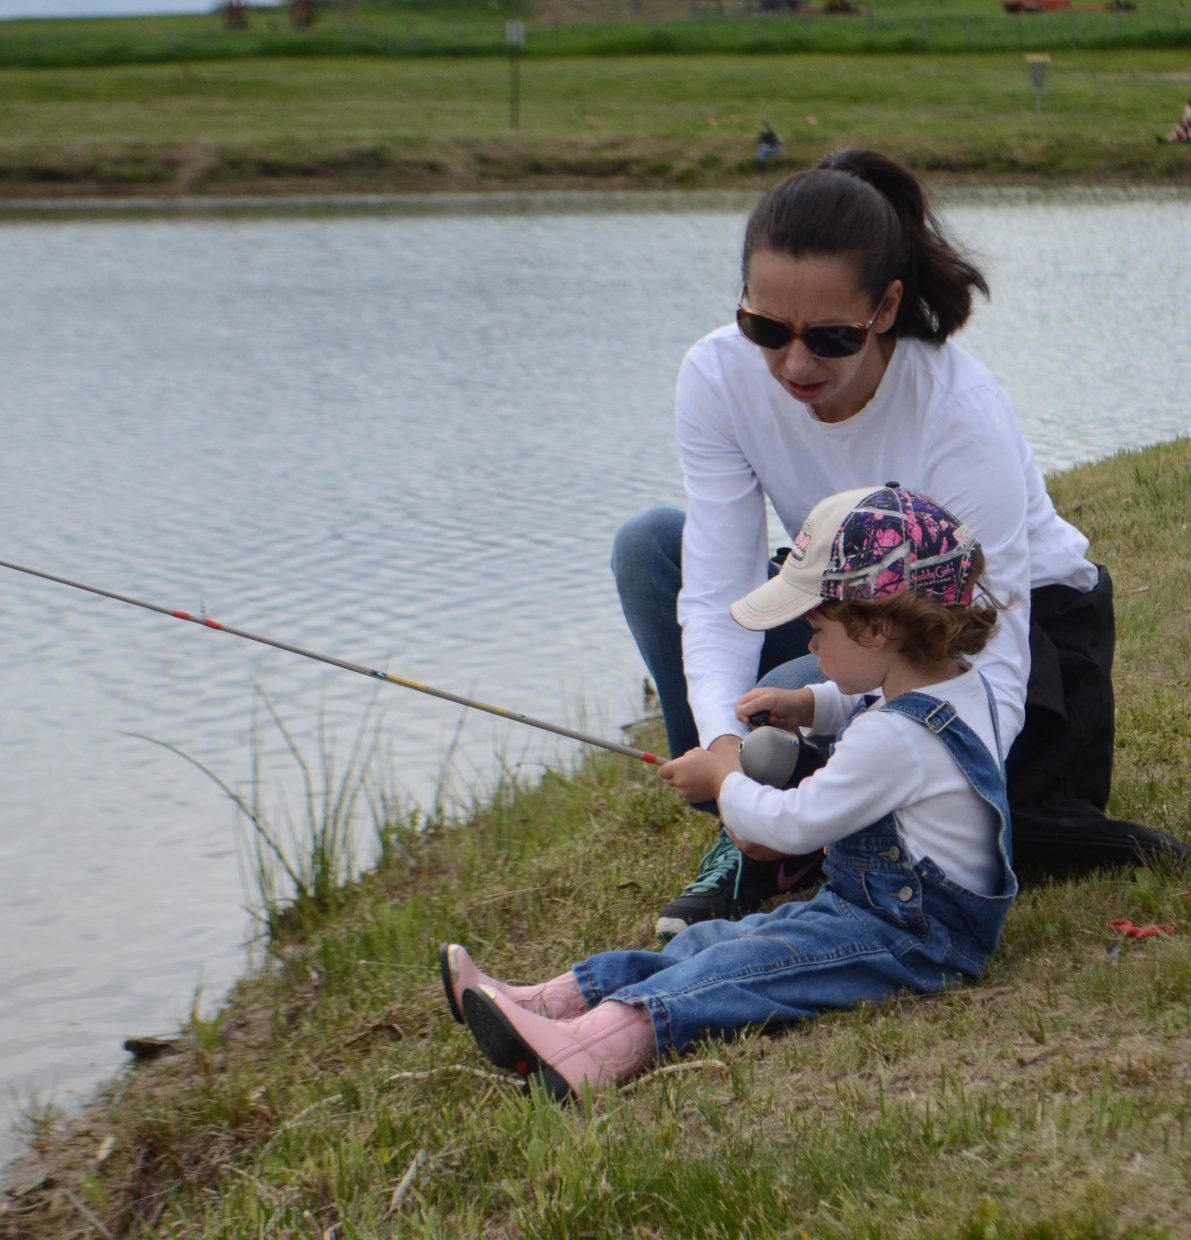 Eve Phillips, of Craig, helps Courtney Archuleta reel in her line during Saturday's Huck Finn Day Fishing Derby at Hayden's Dry Creek Park.